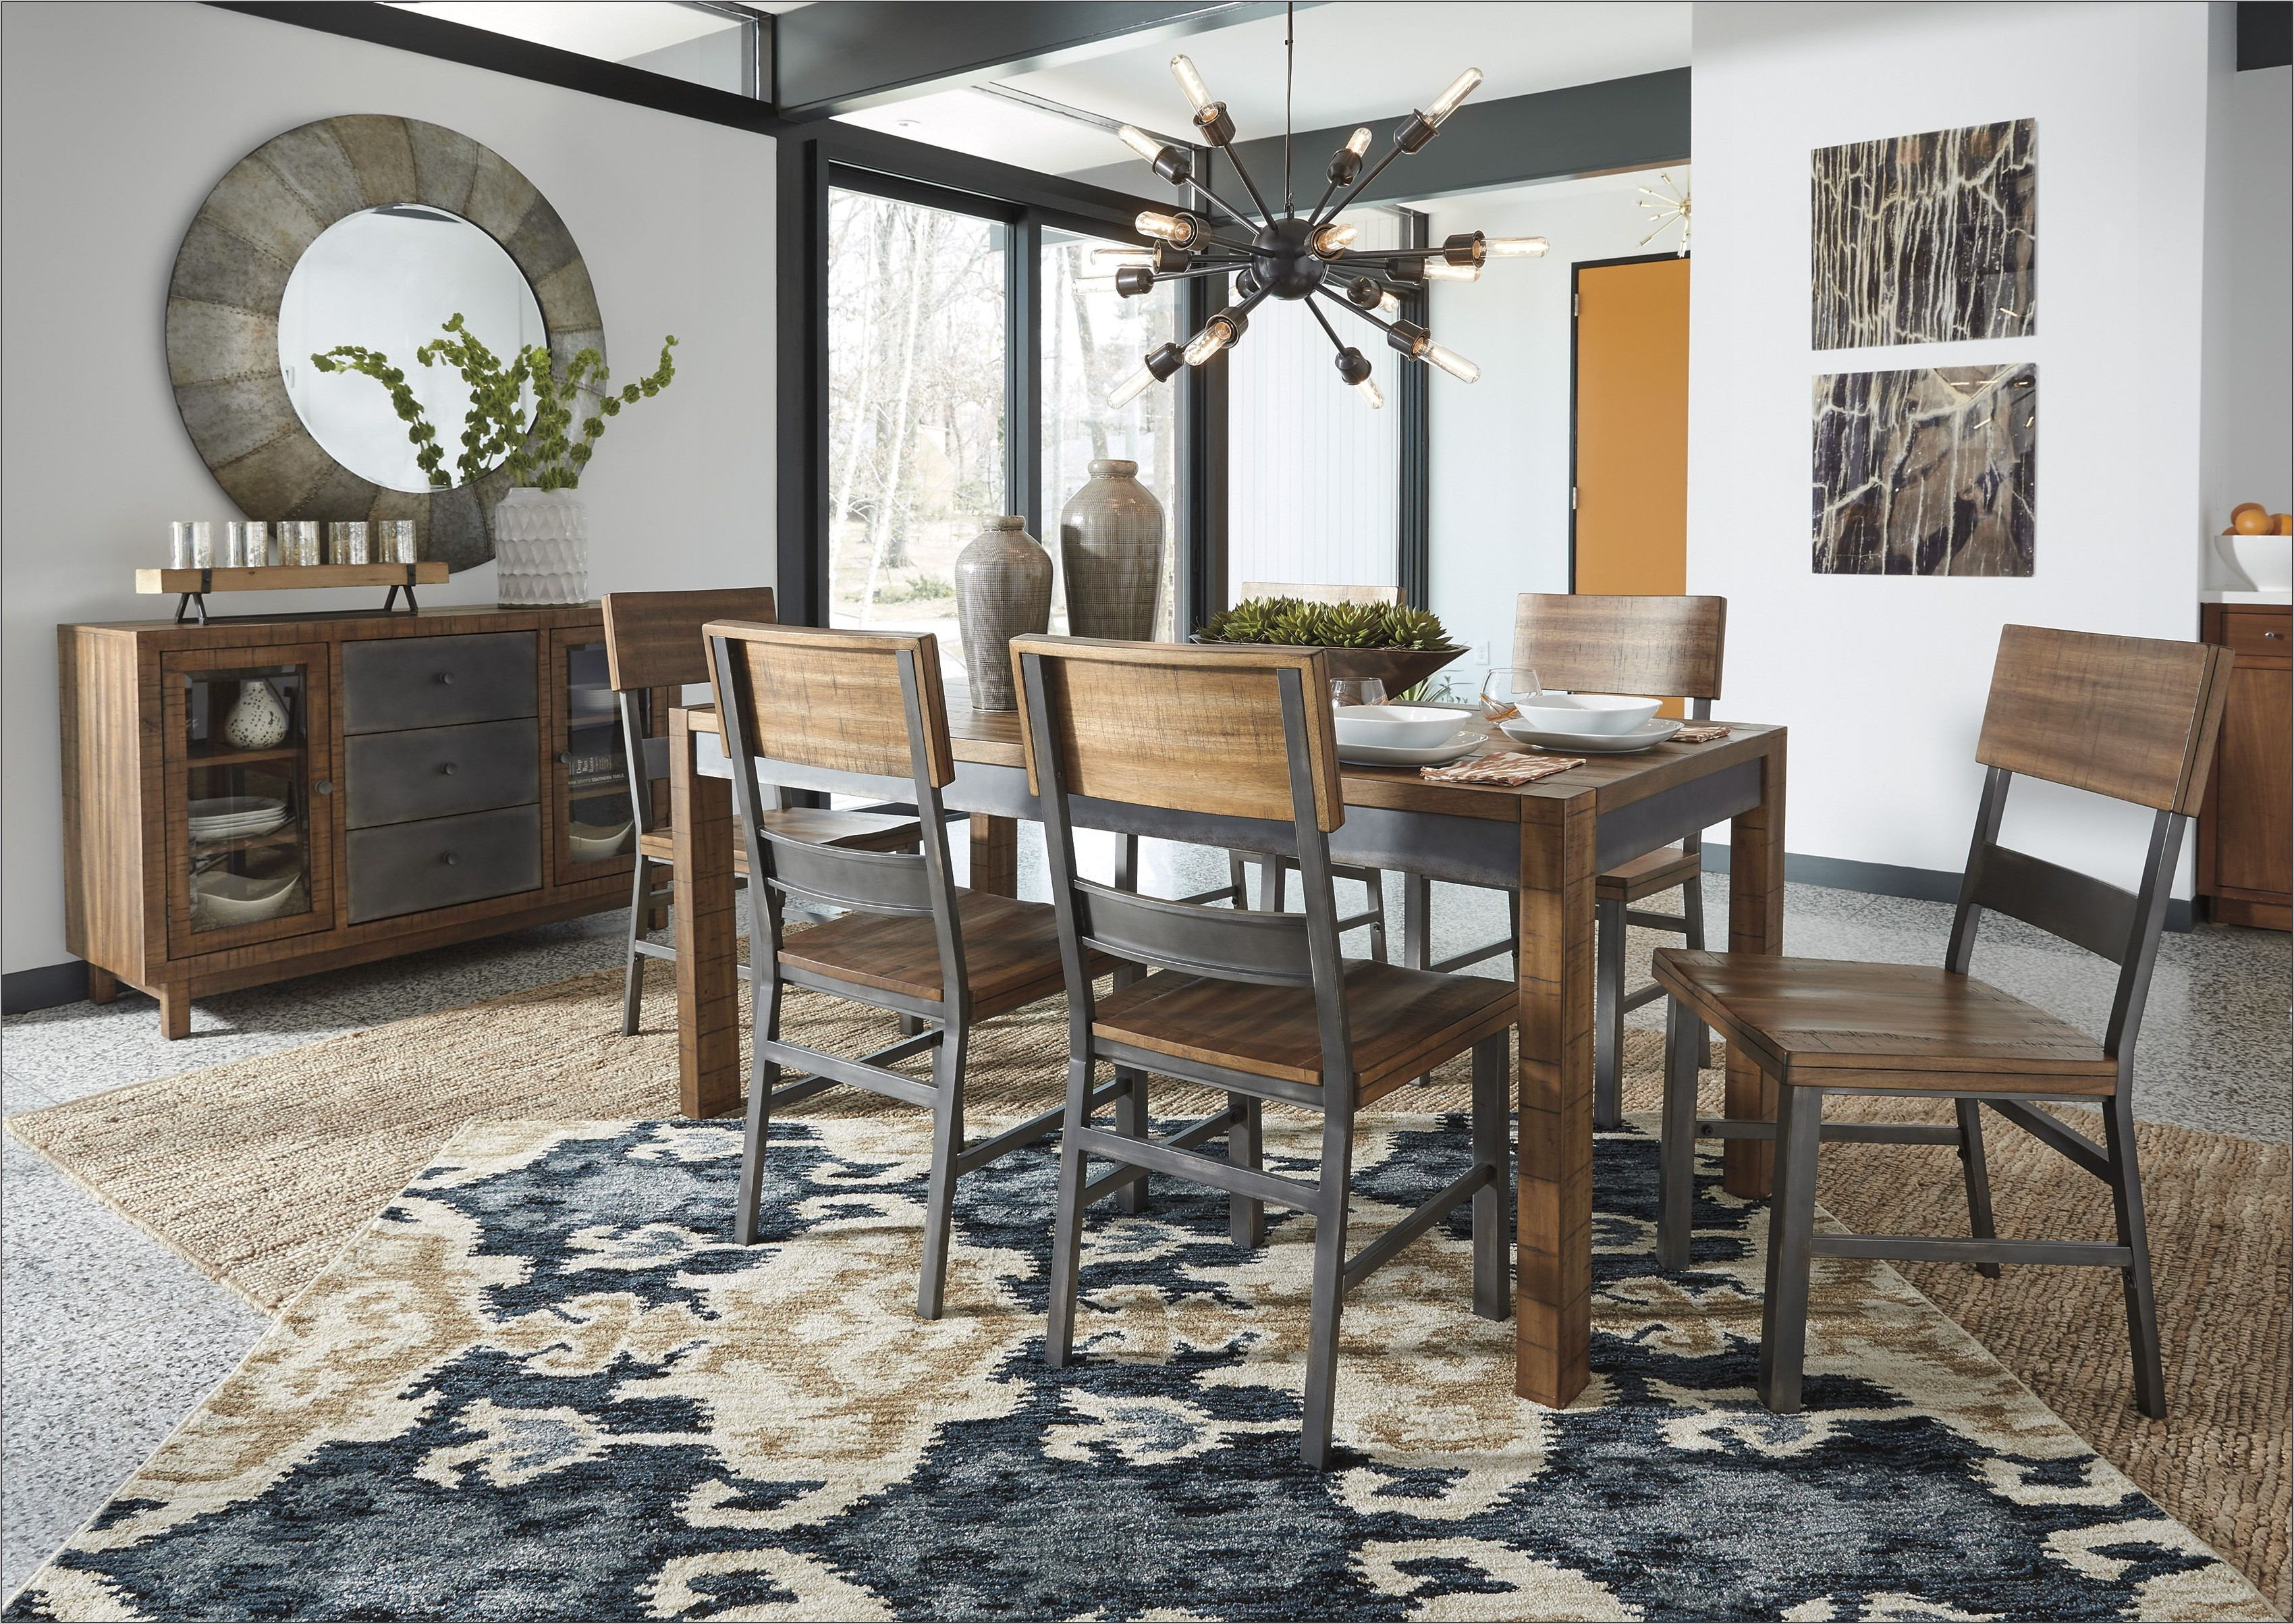 Harlynx 5 Piece Dining Room